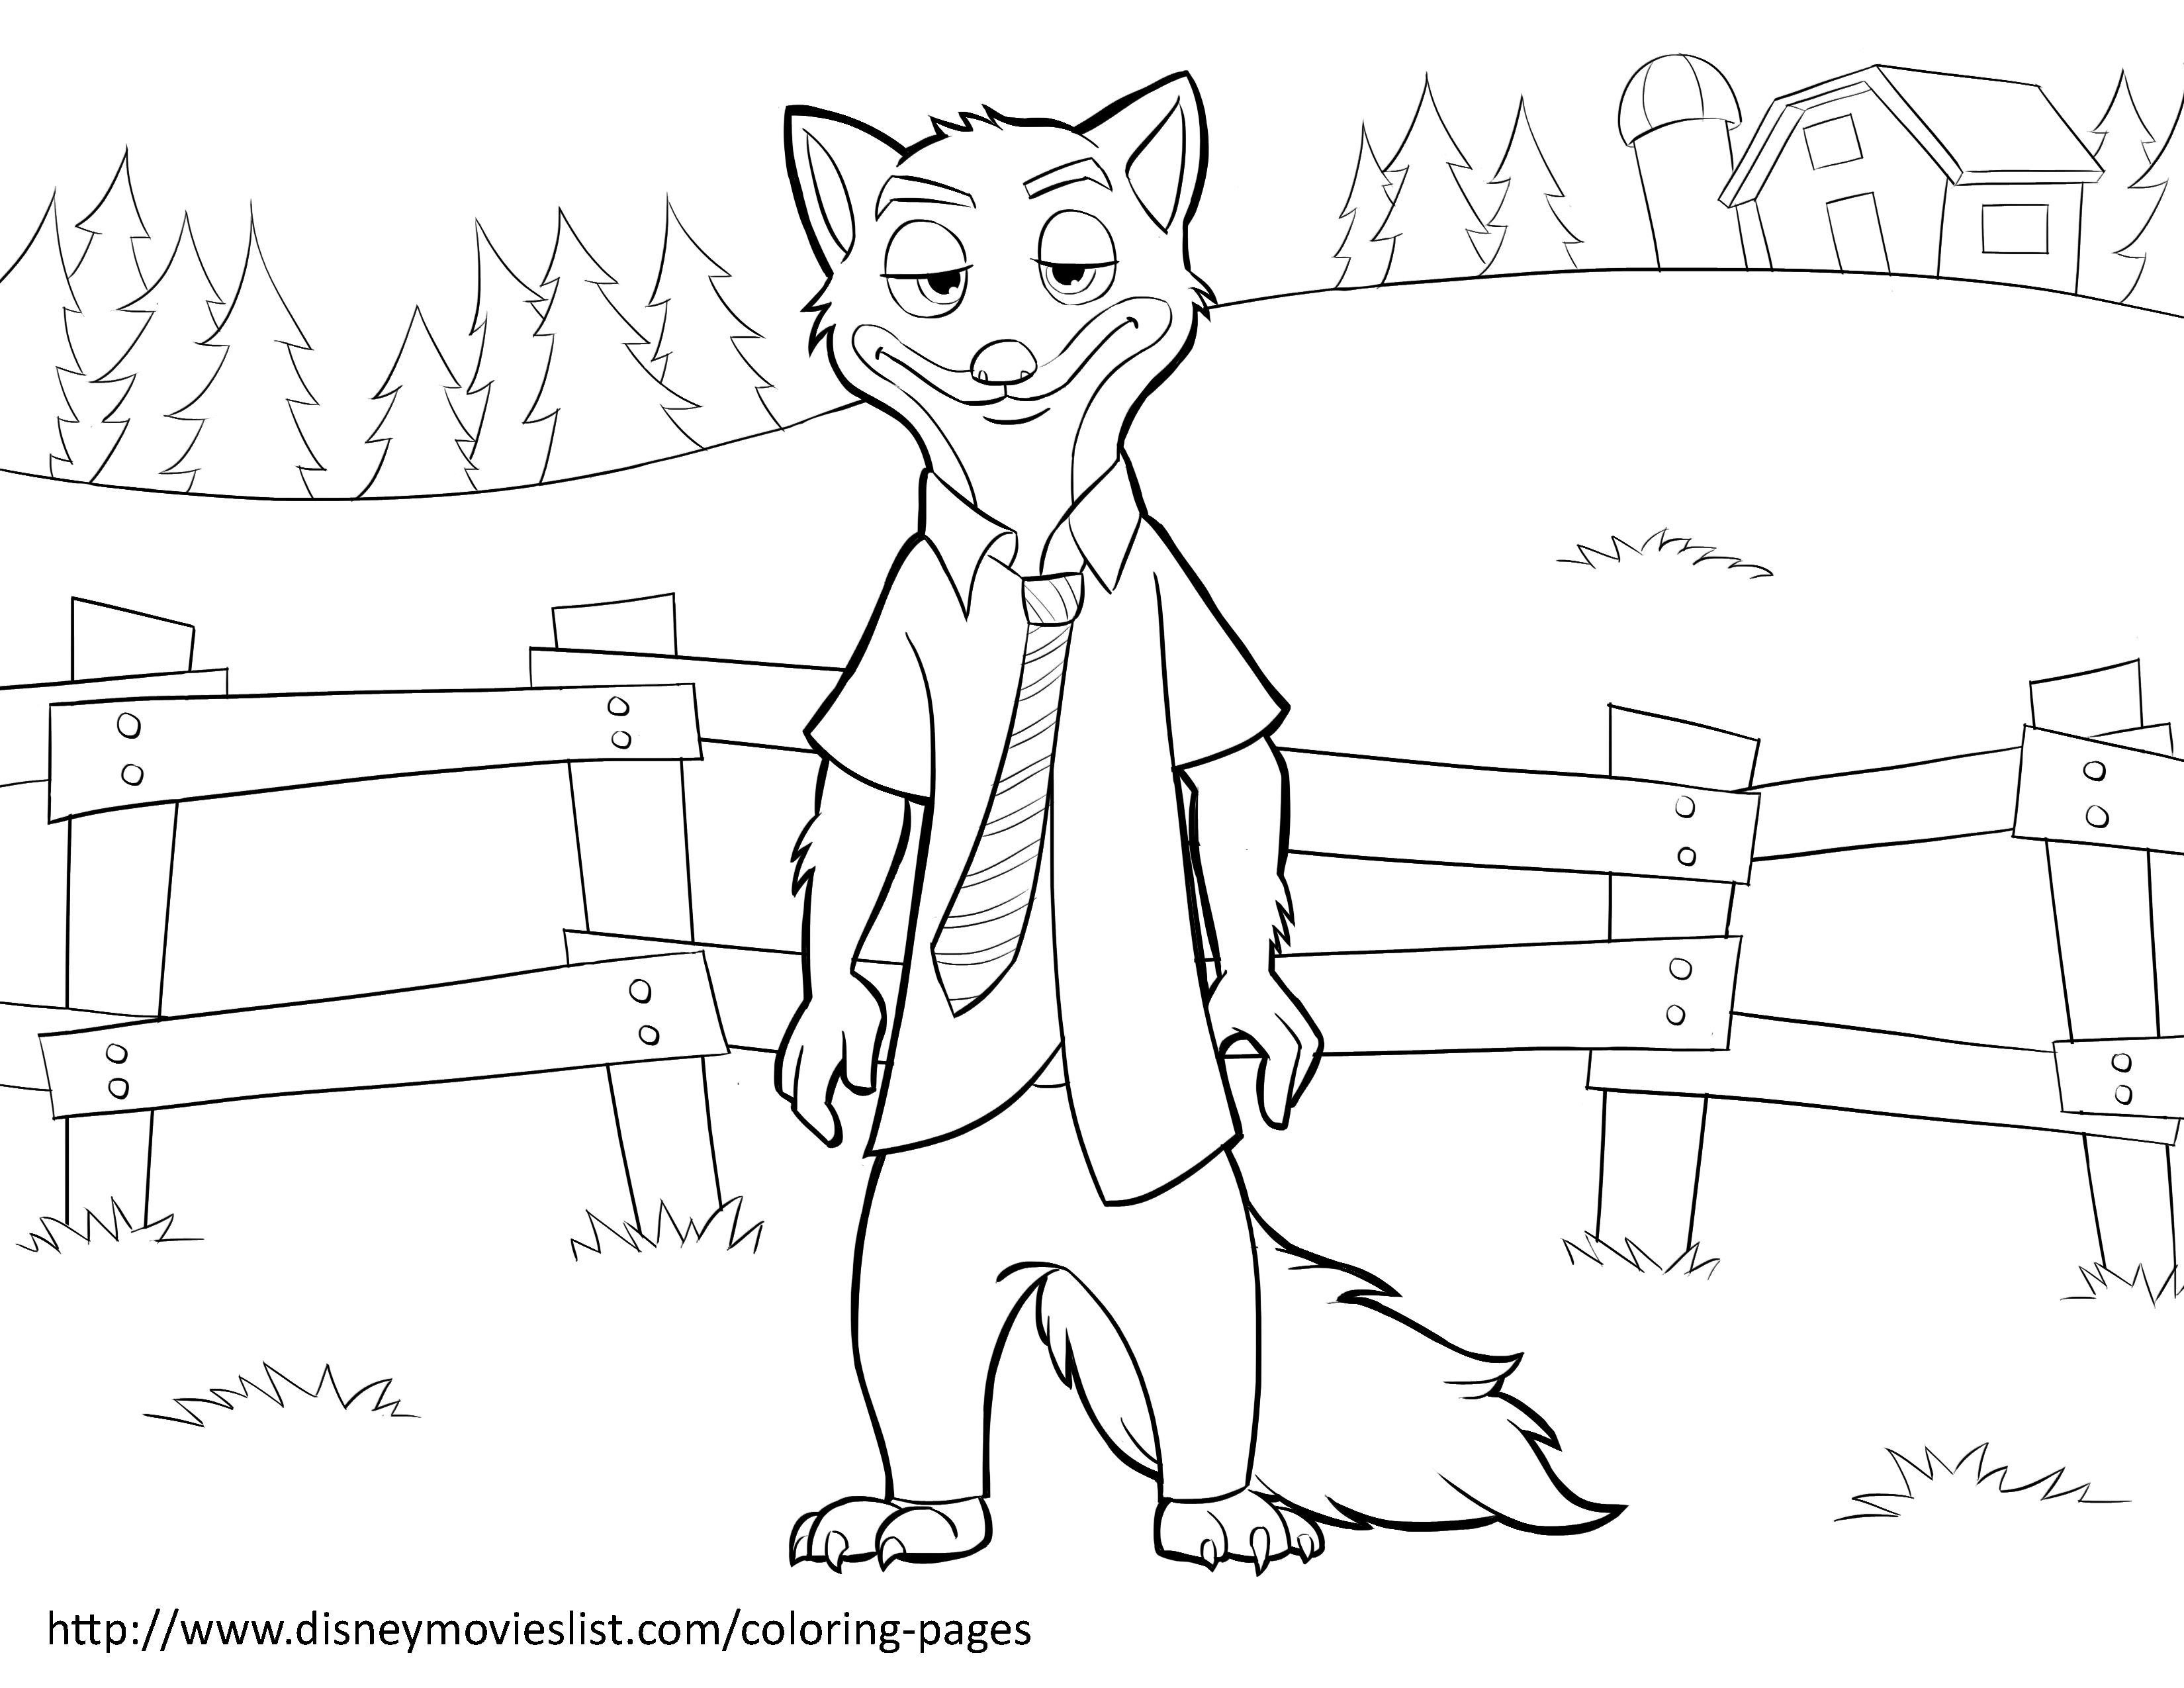 Free Printable Nick Wilde Zootopia Coloring Page Sheet Zootopia Coloring Pages Lego Coloring Pages Coloring Pages